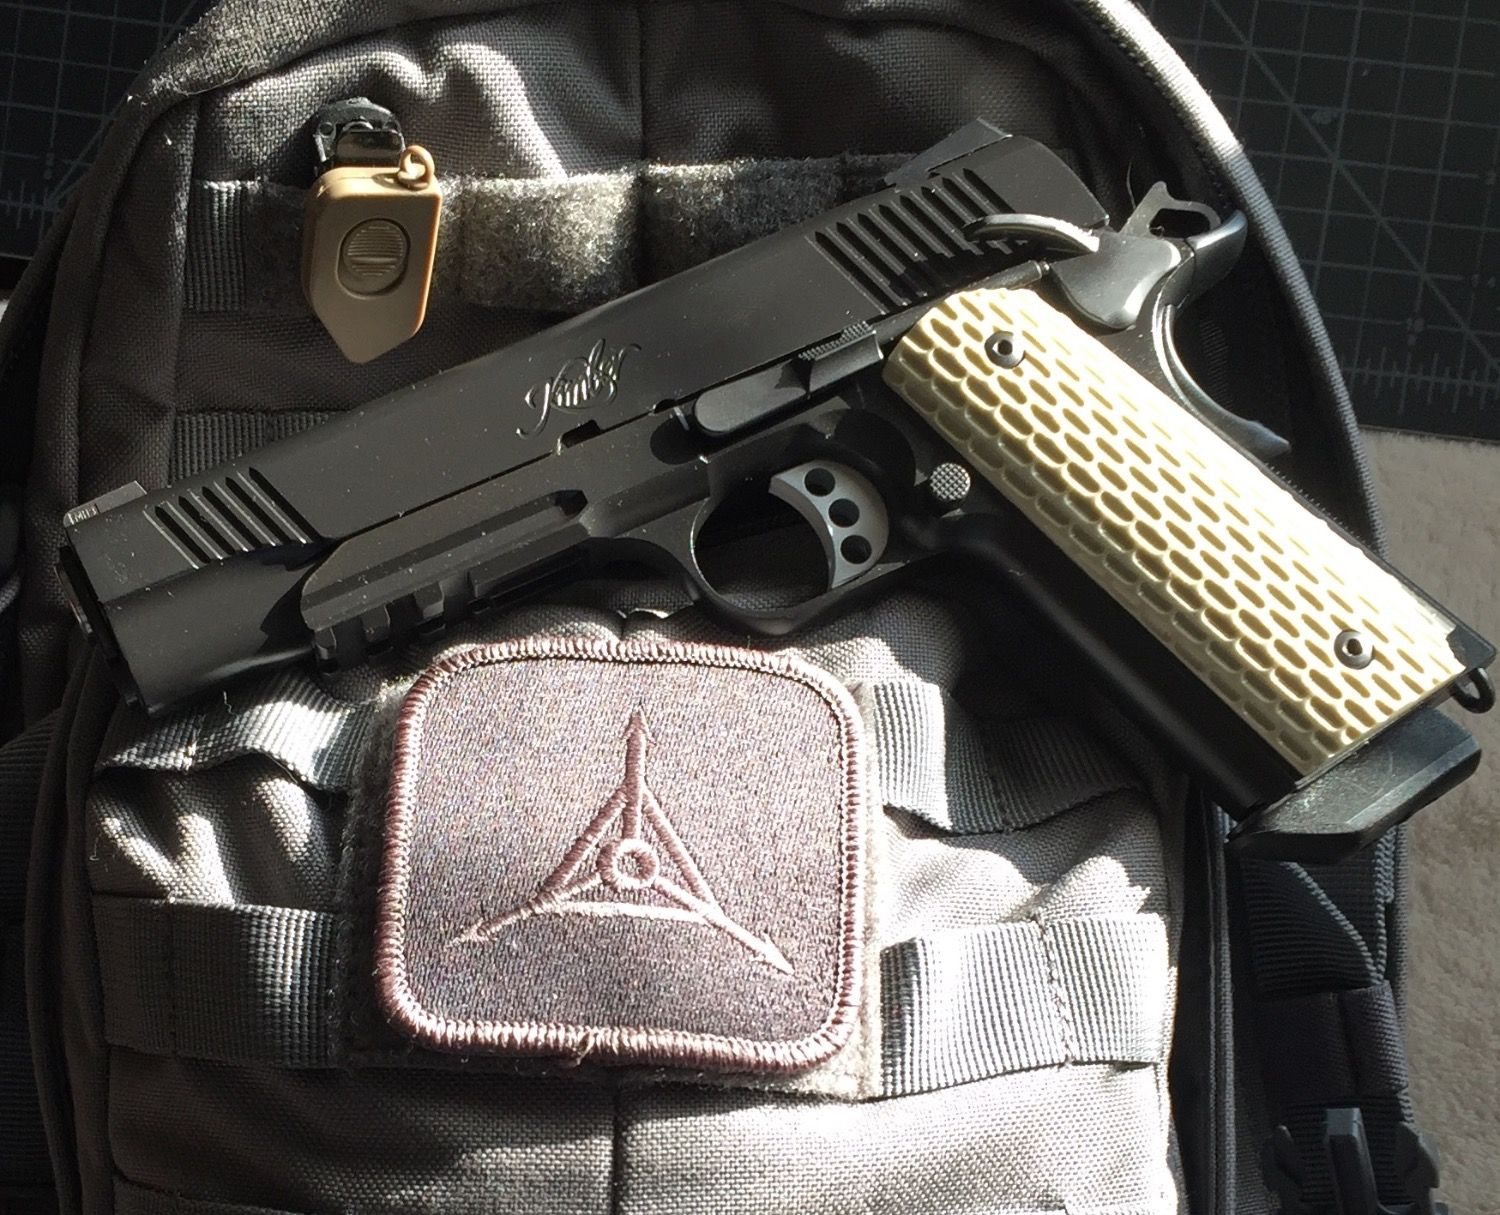 My new Kimber Warrior 1911  45 ACP and TAD patch  This